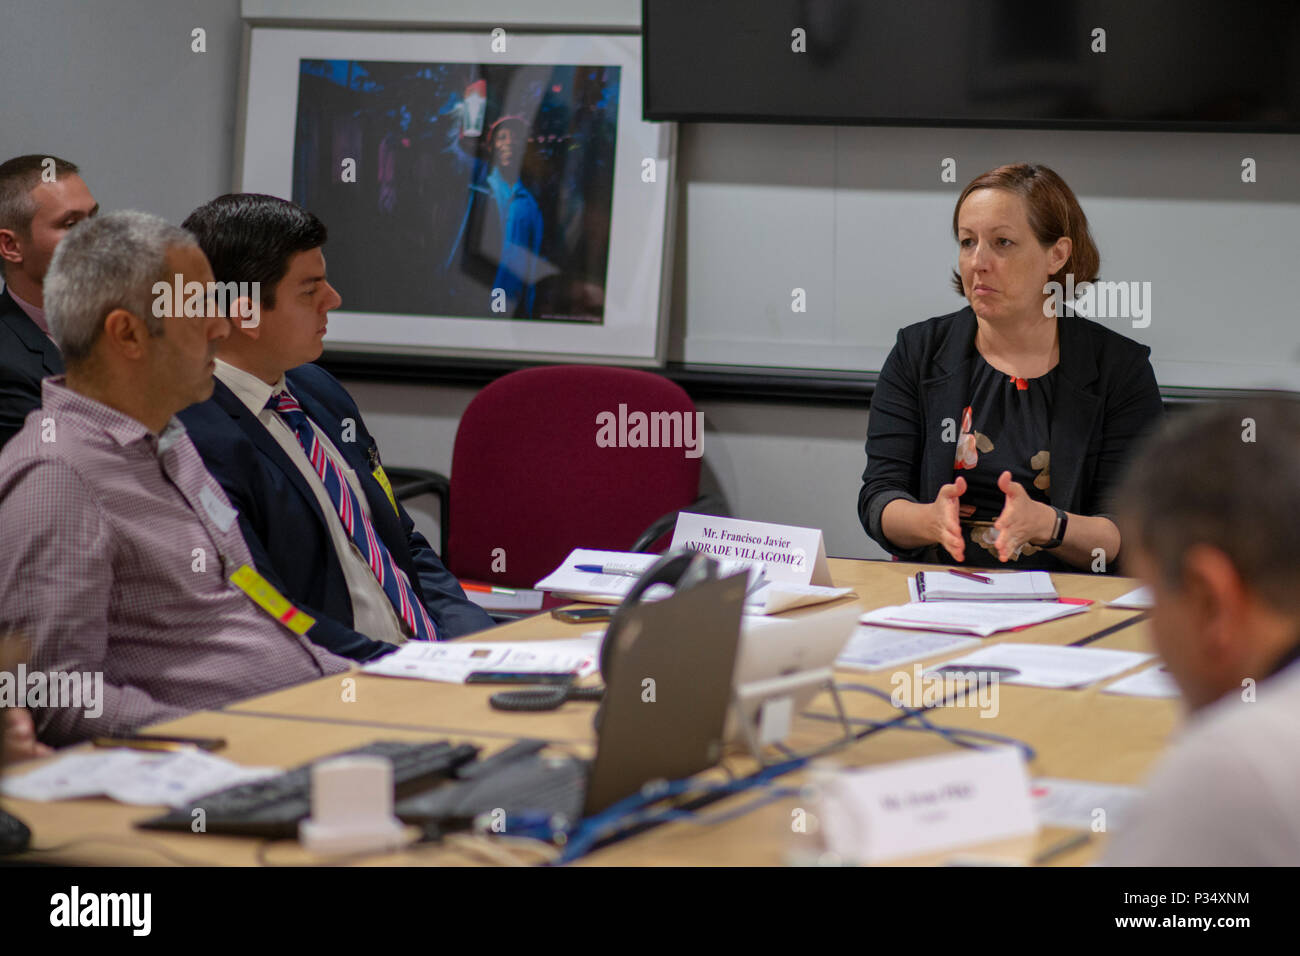 US Agency for International Development private sector engagement specialist, Autumn Gorman, right, discusses entrepreneurship and small business development with representatives from 22 different countries during a visit from the Department of State's International Visitor Leadership Program in Washington, D.C., June 12, 2018. (USAID photo by Mark Burrell) - Stock Image